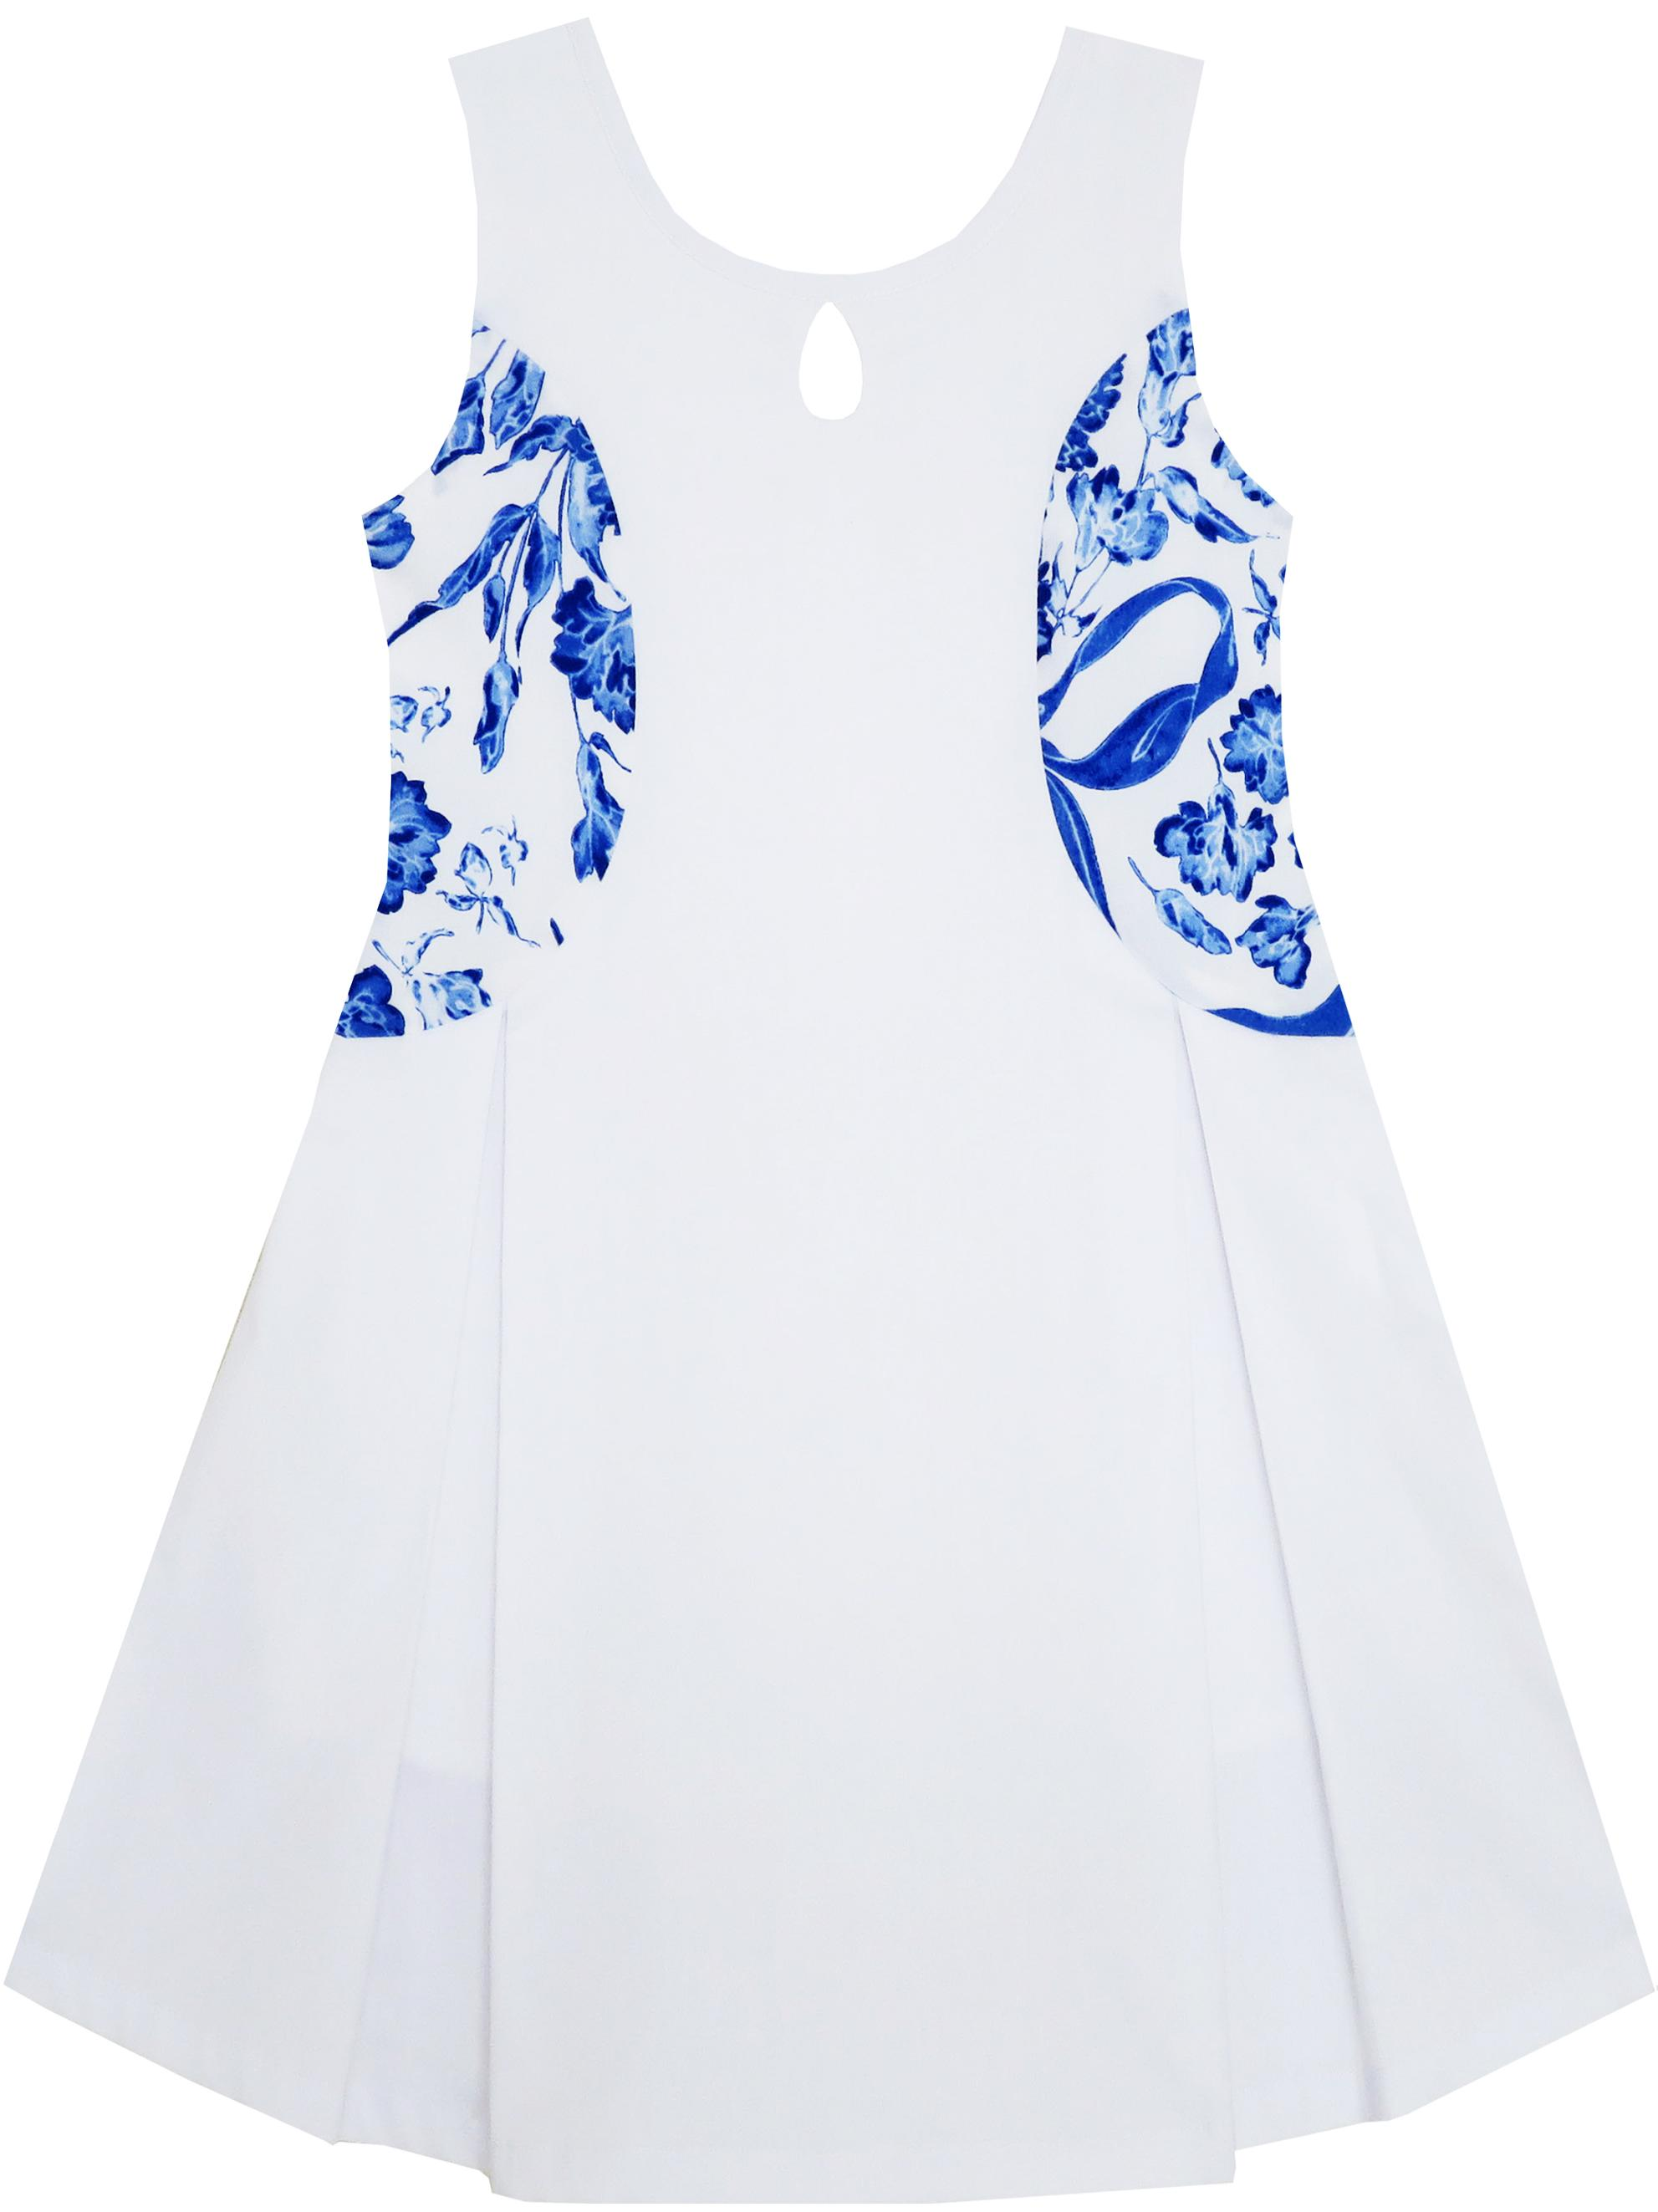 8e19e41e07d Girls Dress Blue White Porcelain Floral Printed Sleeveless Sundress 5